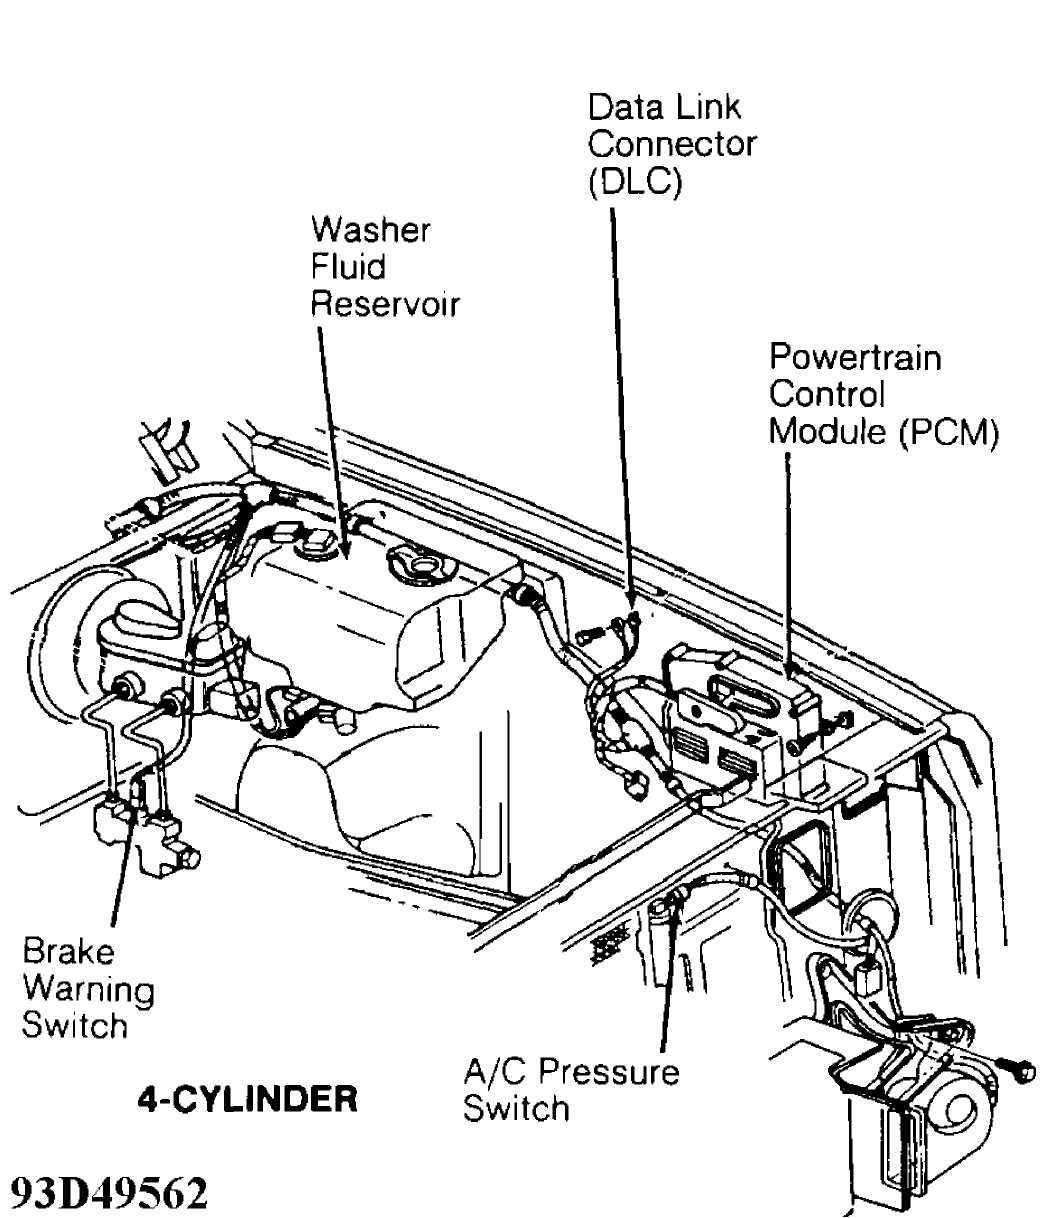 Electrical Component Locator 1993 Jeep Cherokee Xj 4 Cylinder Engine Diagram